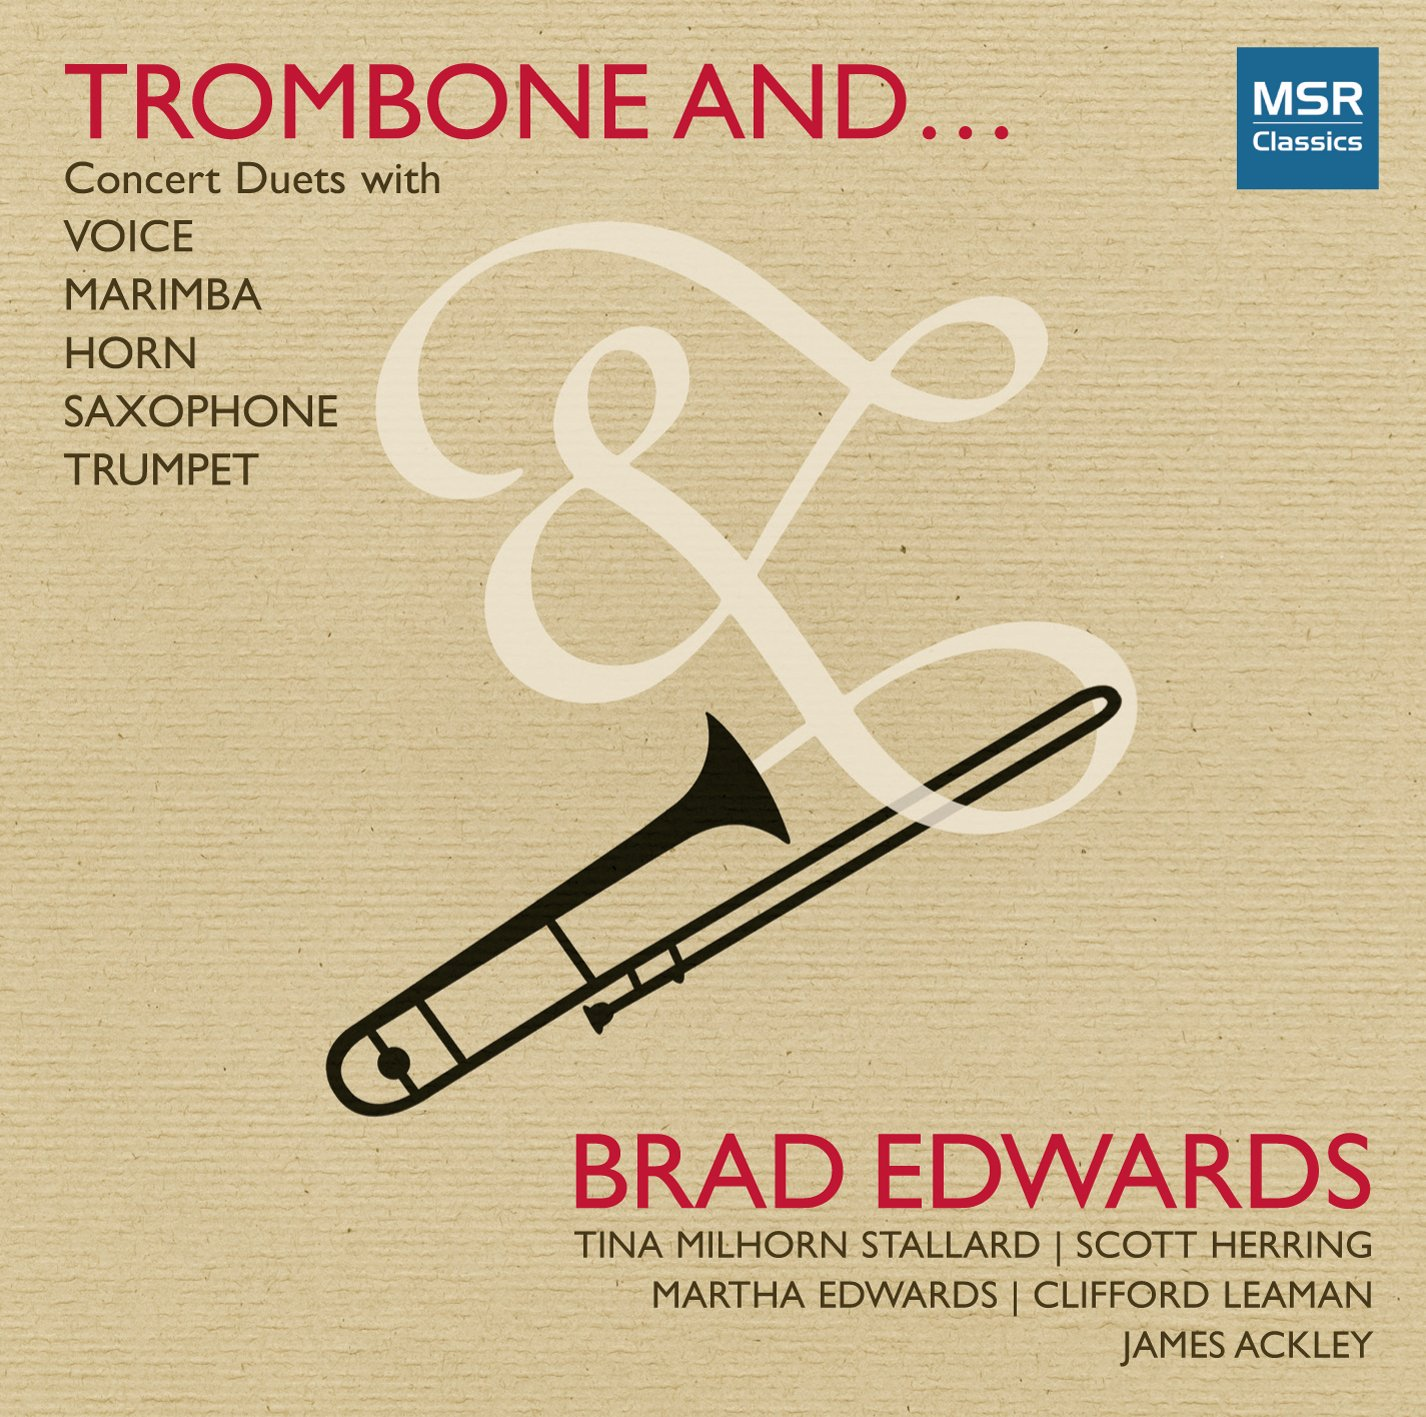 Trombone And   : Concert Duets with Voice, Marimba, Horn, Saxophone and  Trumpet